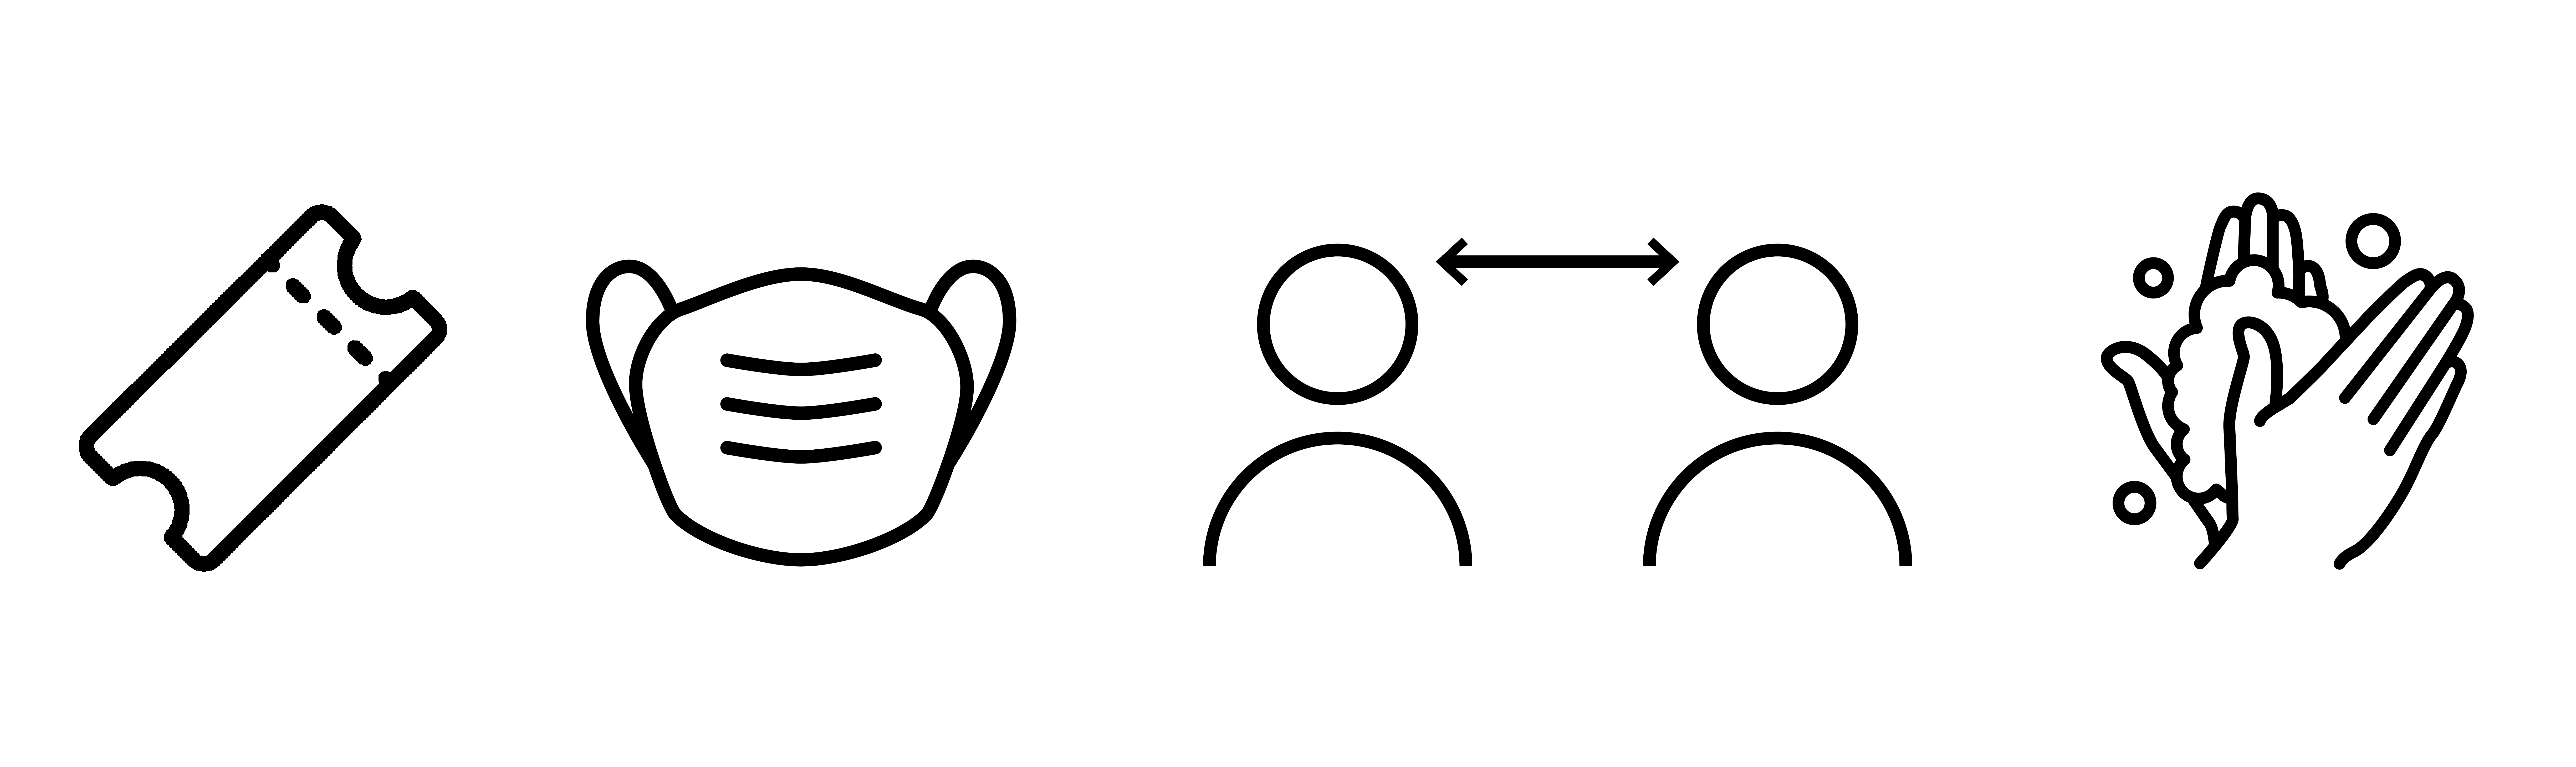 safety icons for booking tickets, wearing a mask, social distancing and washing hands